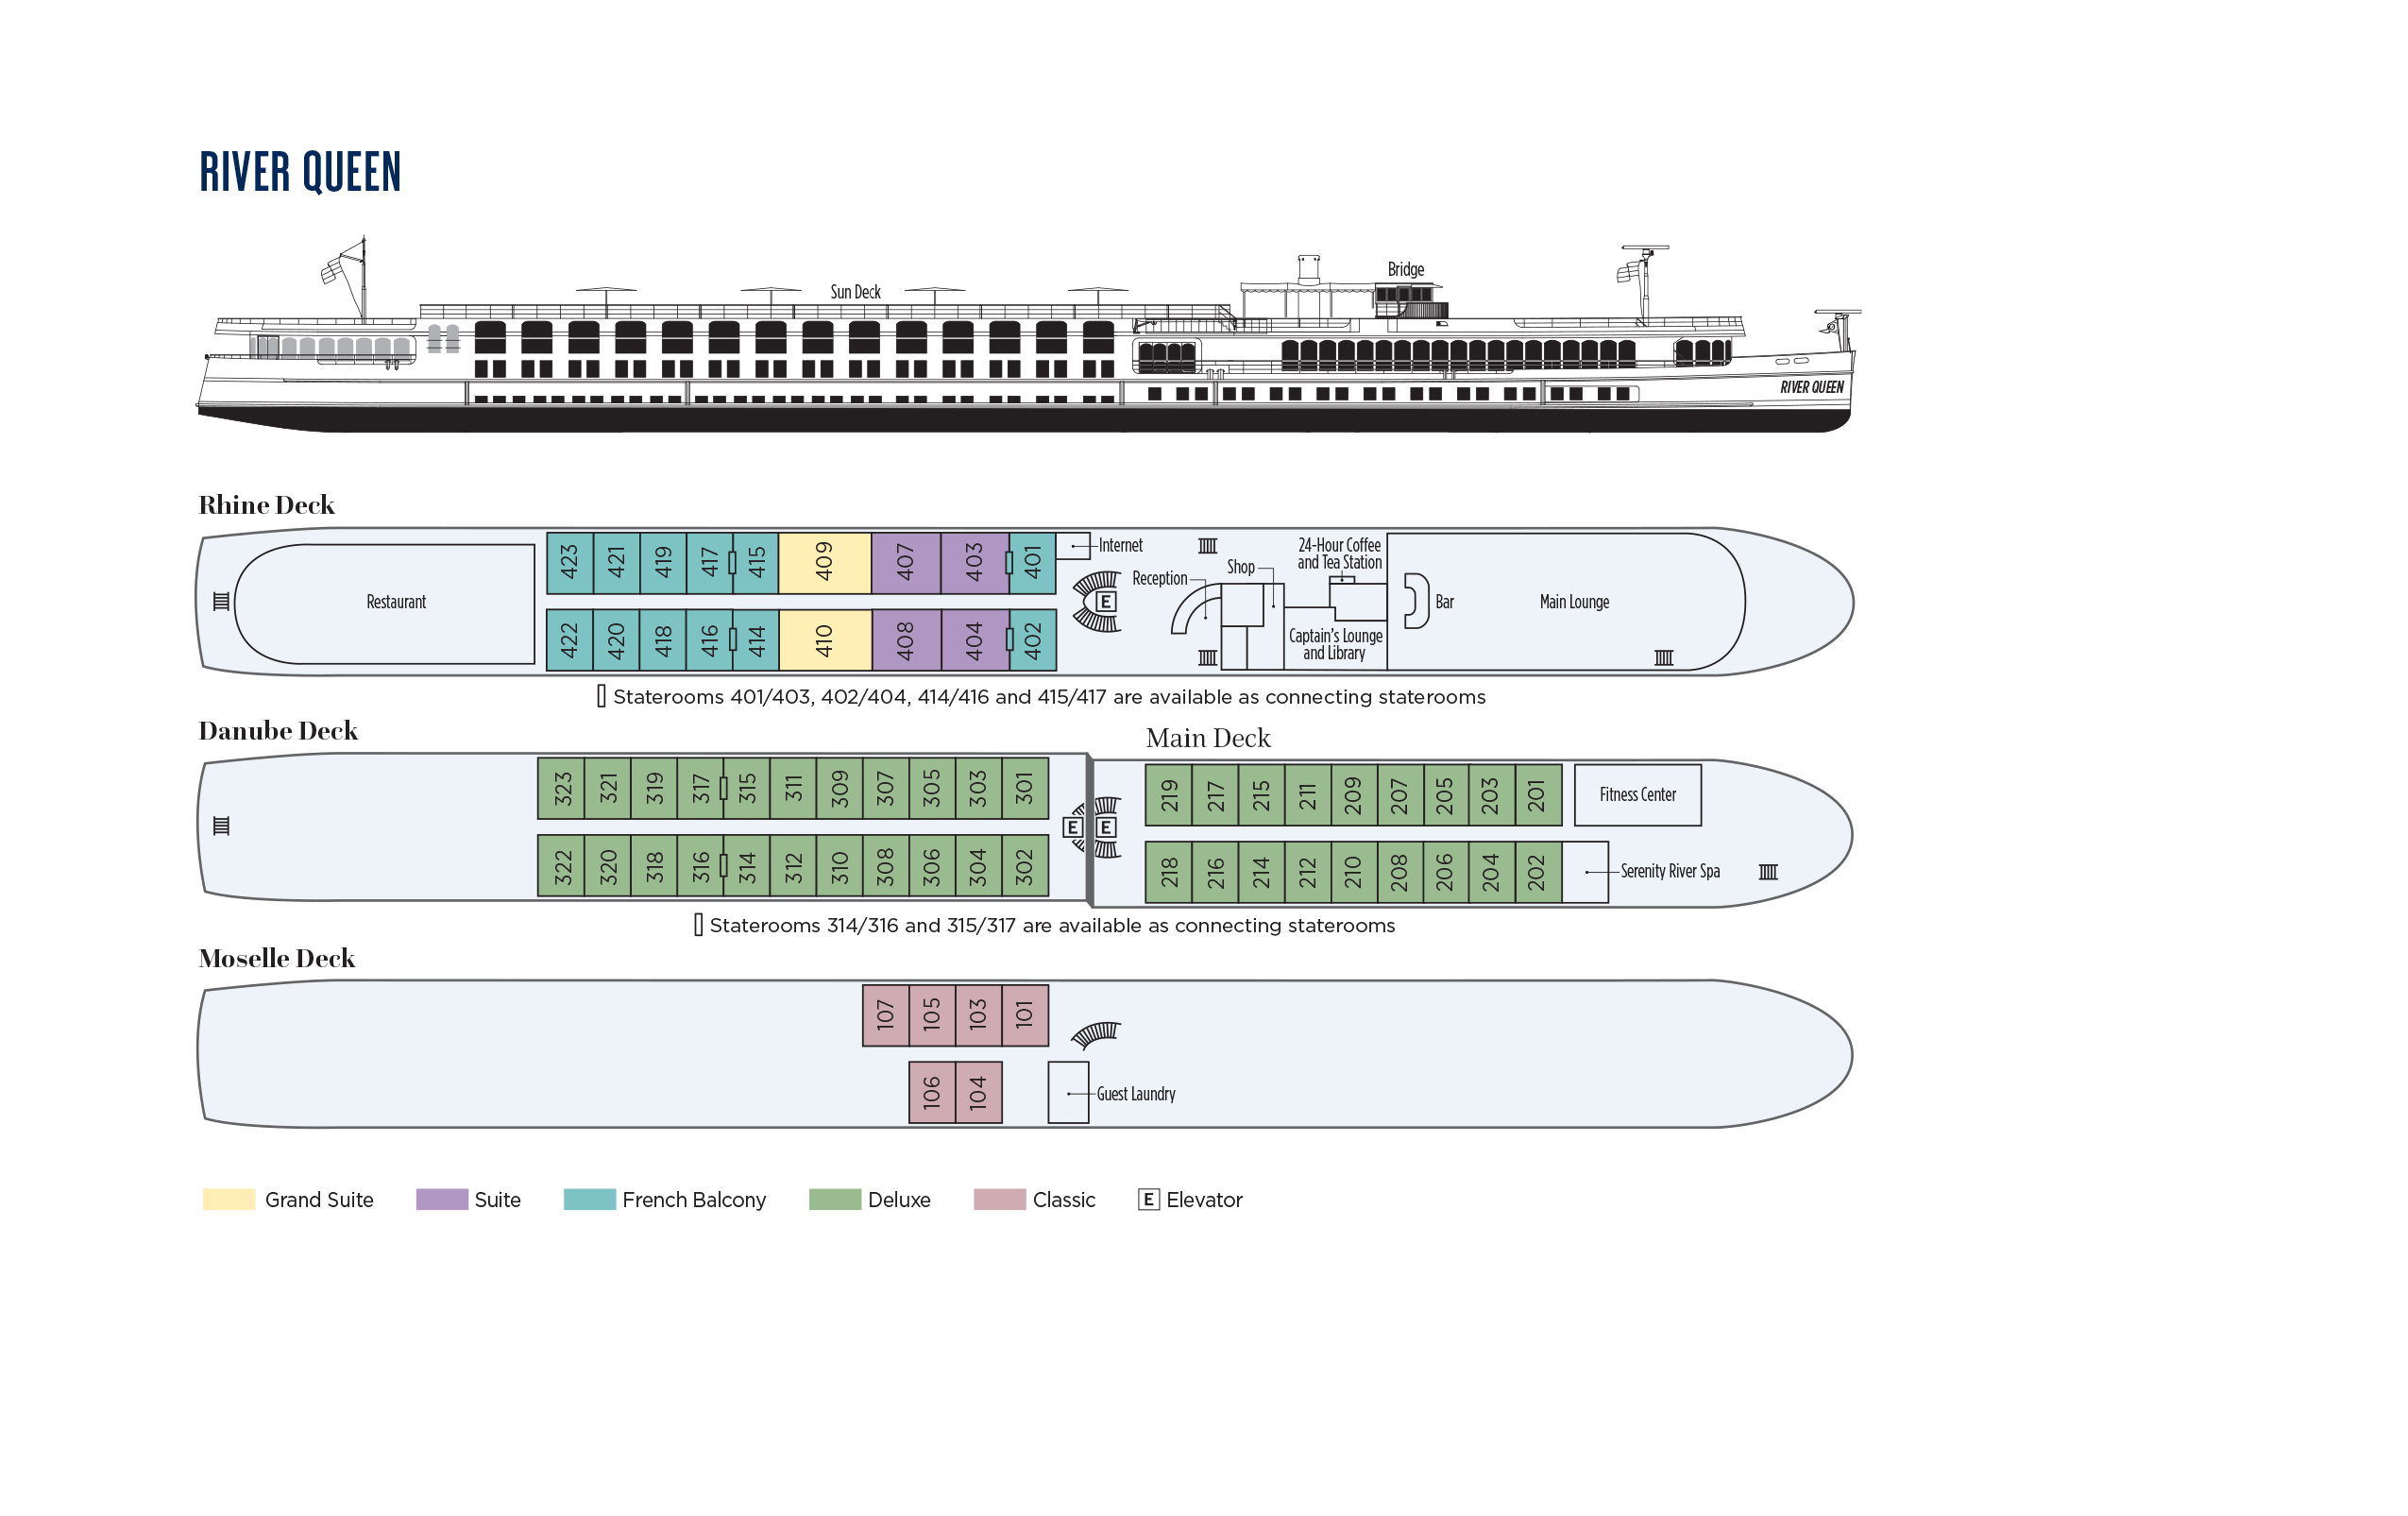 Deck plan (River Queen - 2022)